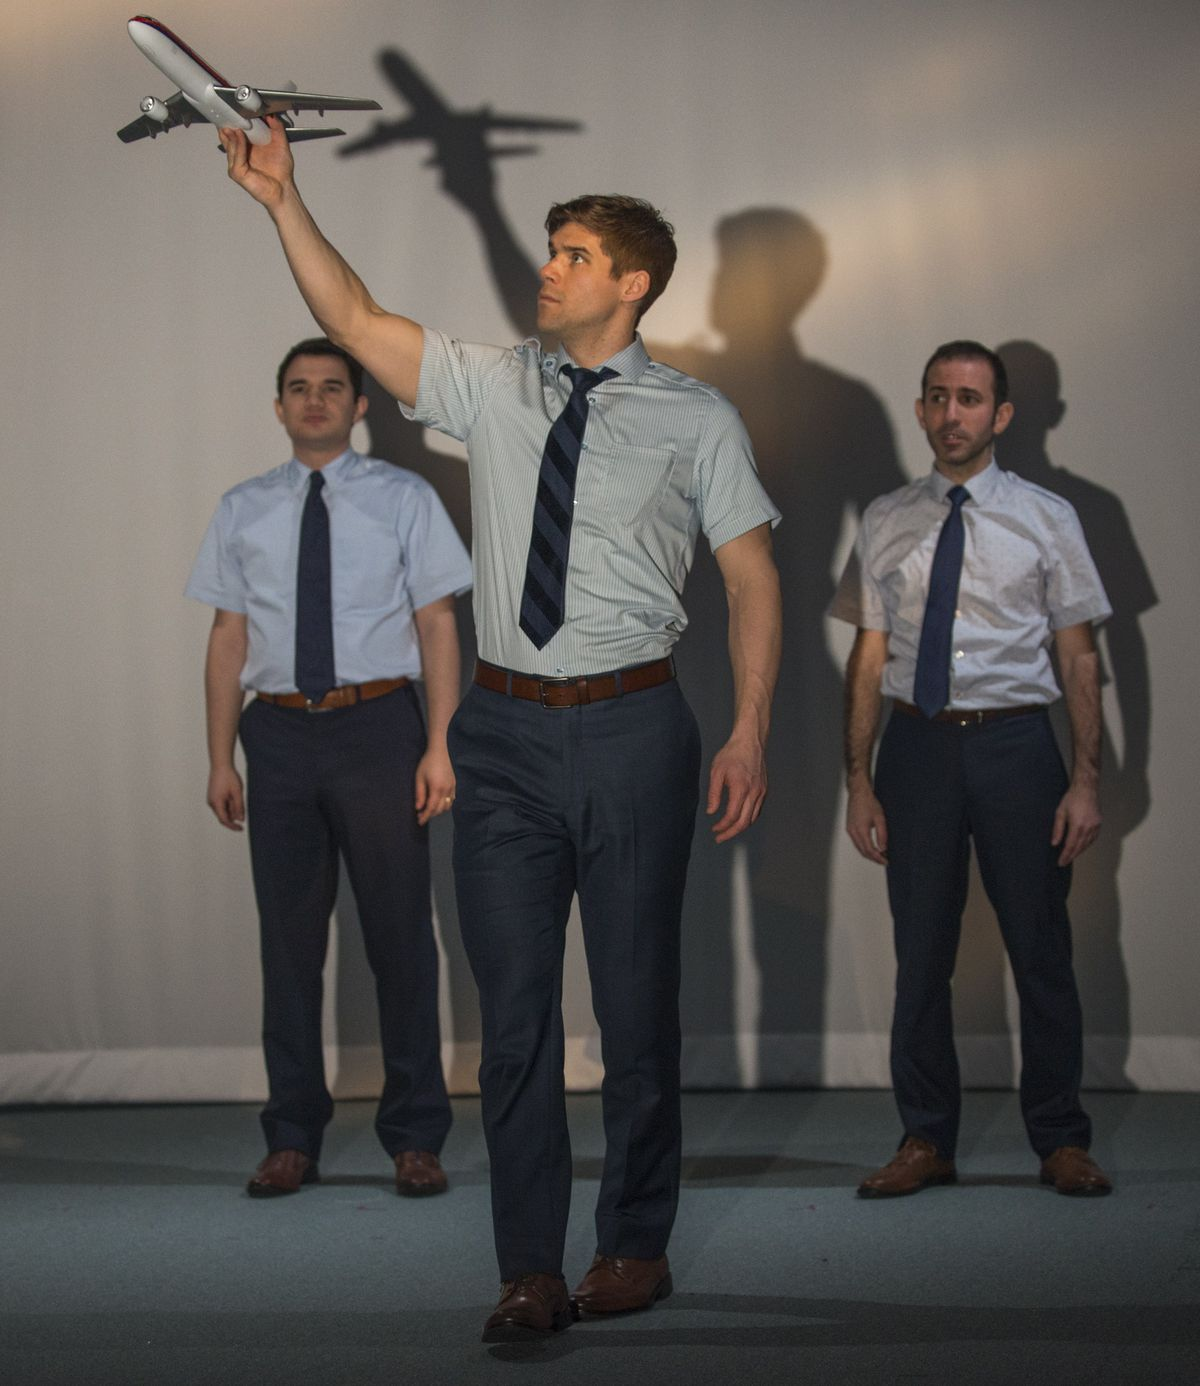 """The crew of """"United Flight 232"""" is portrayed by Rudy Galvan (from left), James Doherty and Johnny Arena. (Photo: Michael Brosilow)"""